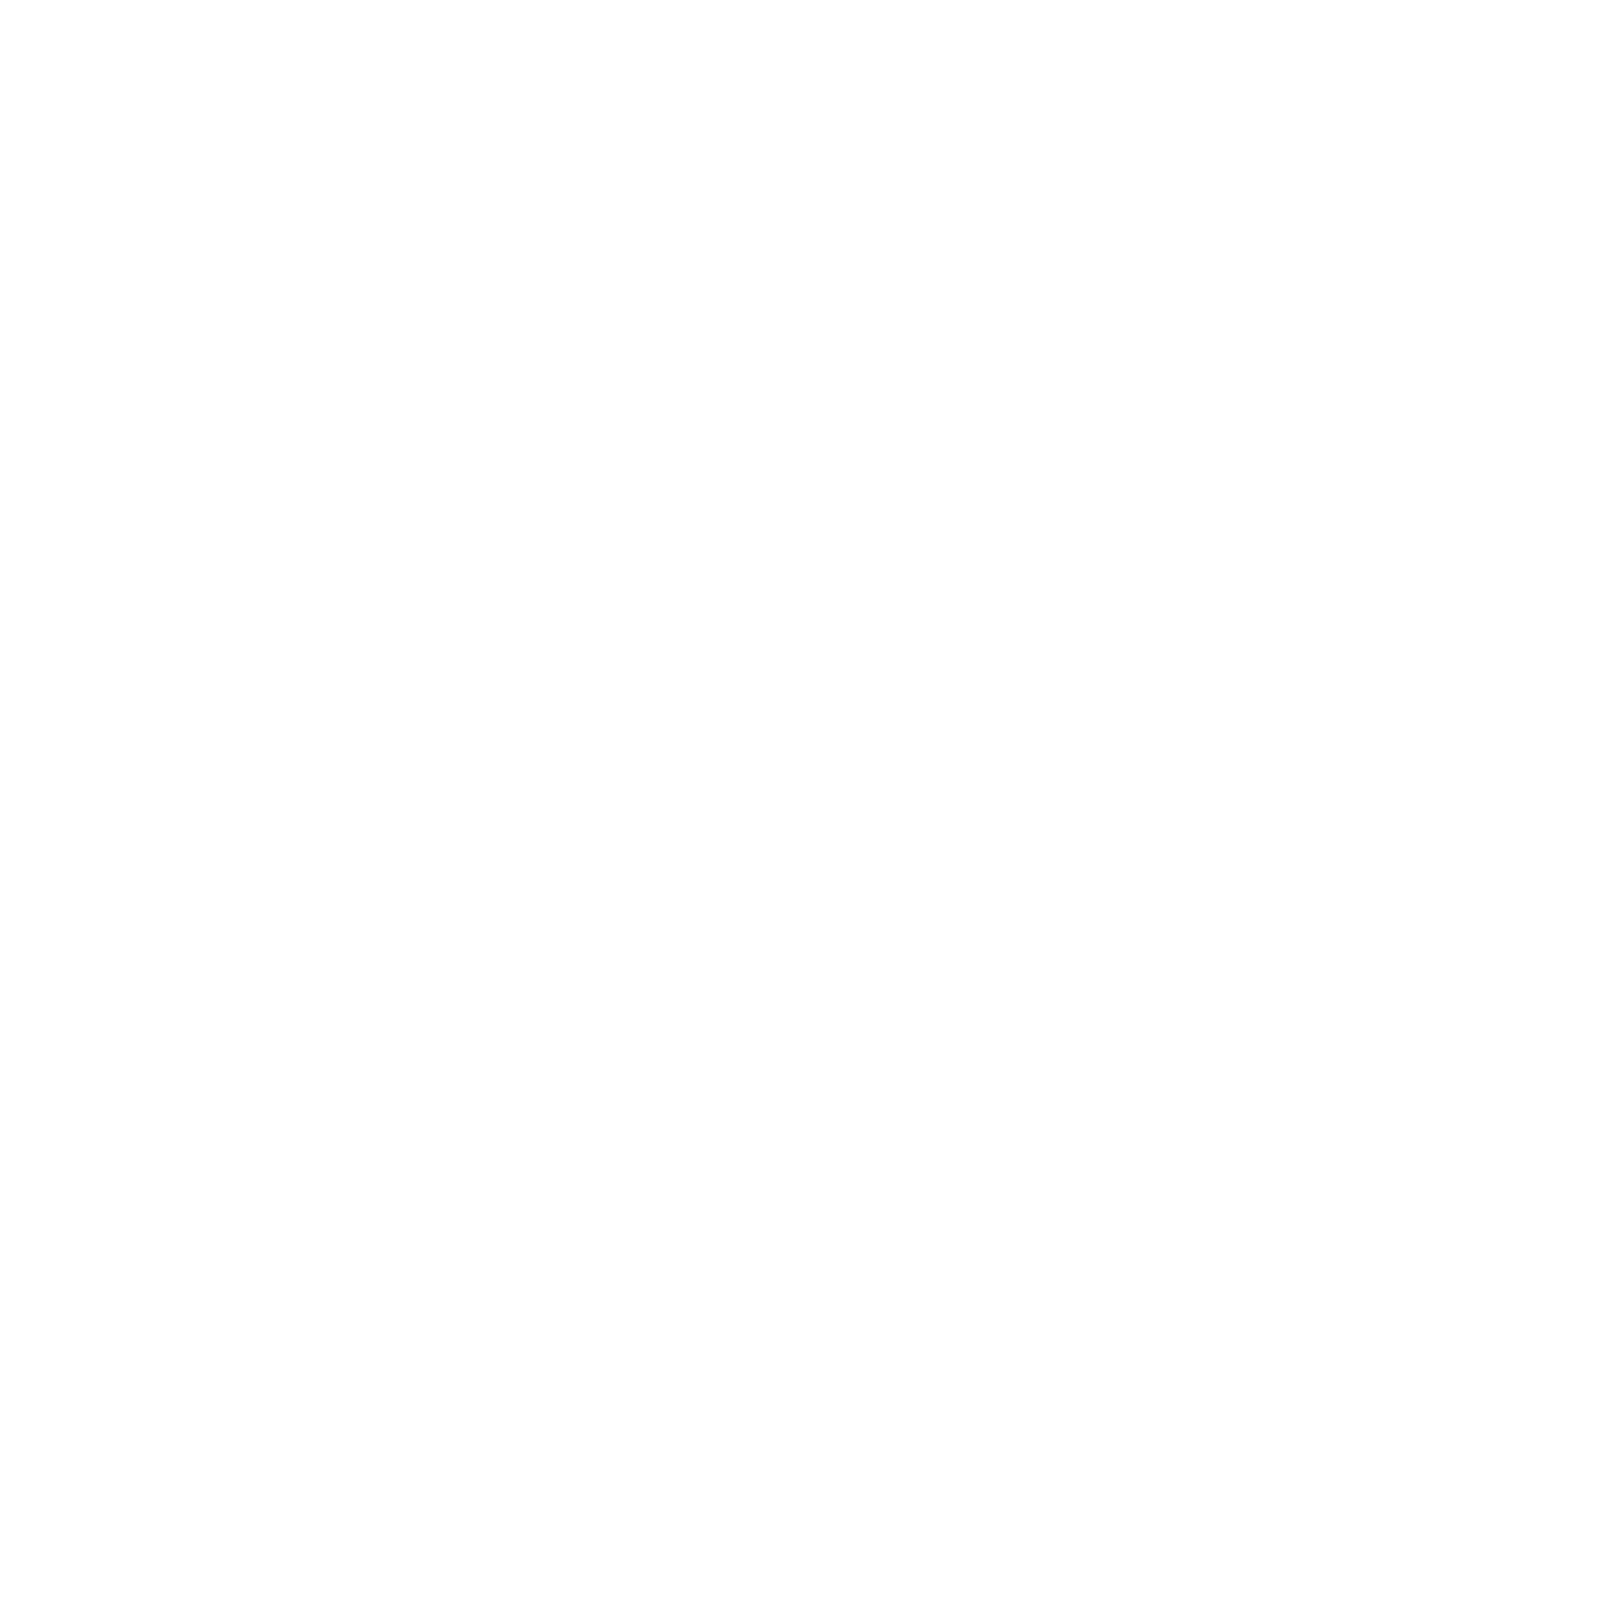 Mail Black Envelope Symbol